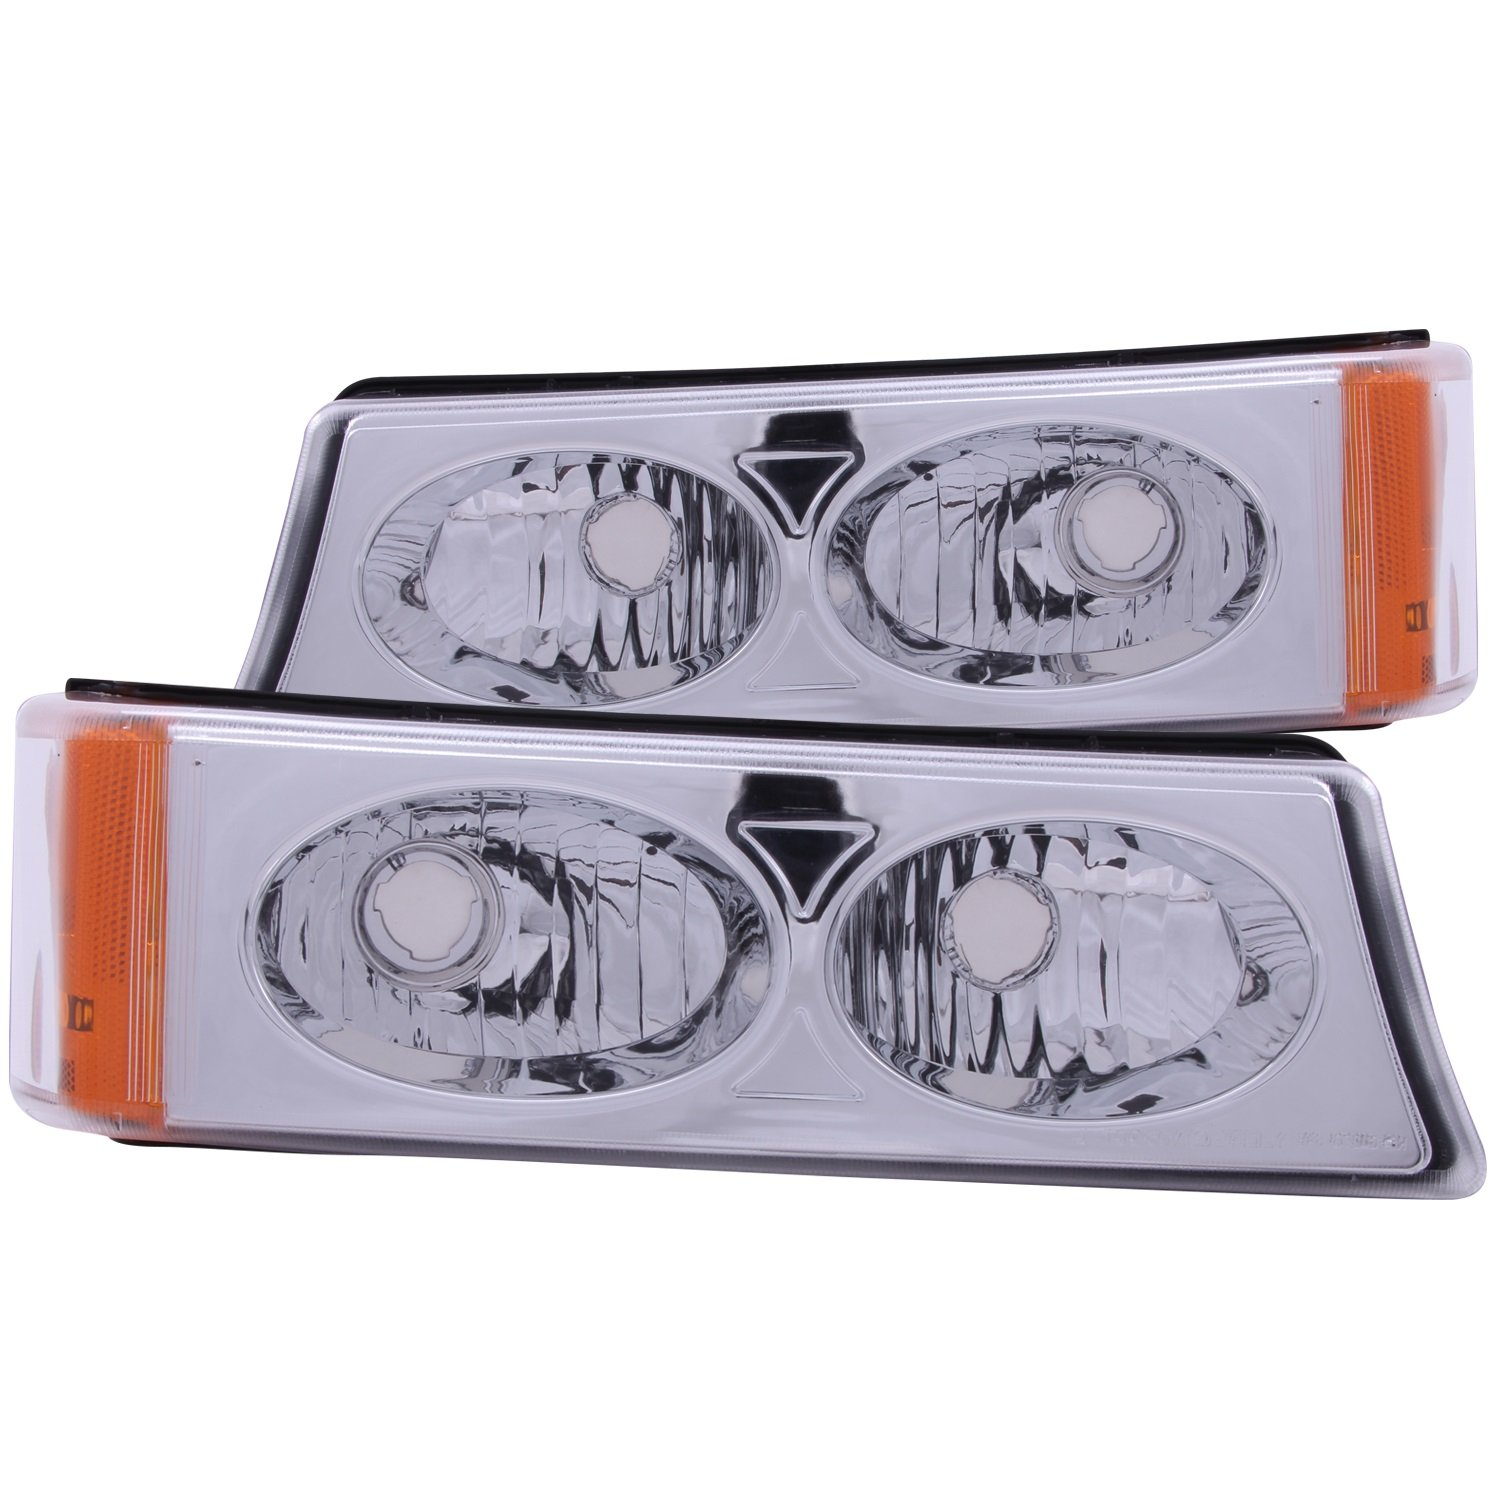 Anzo USA 511036 Chevrolet Avalanche/Silverado Black Crystal Lens Parking Light Assembly - (Sold in Pairs)